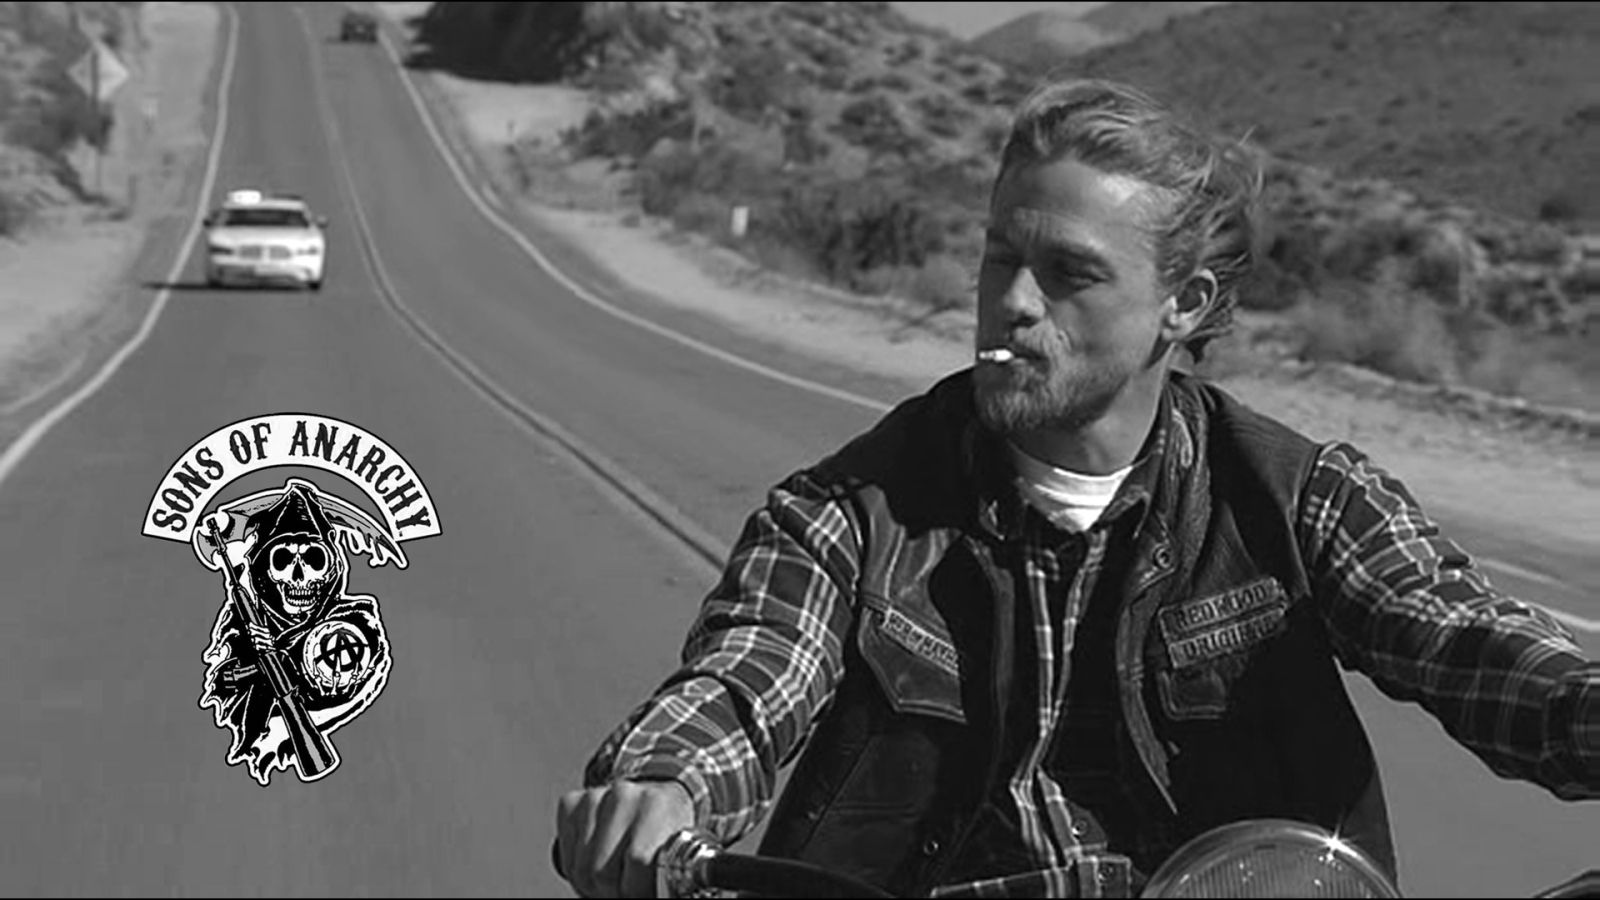 Hd Charlie Hunnam Wallpapers: Charlie Hunnam Sons Of Anarchy Wallpapers